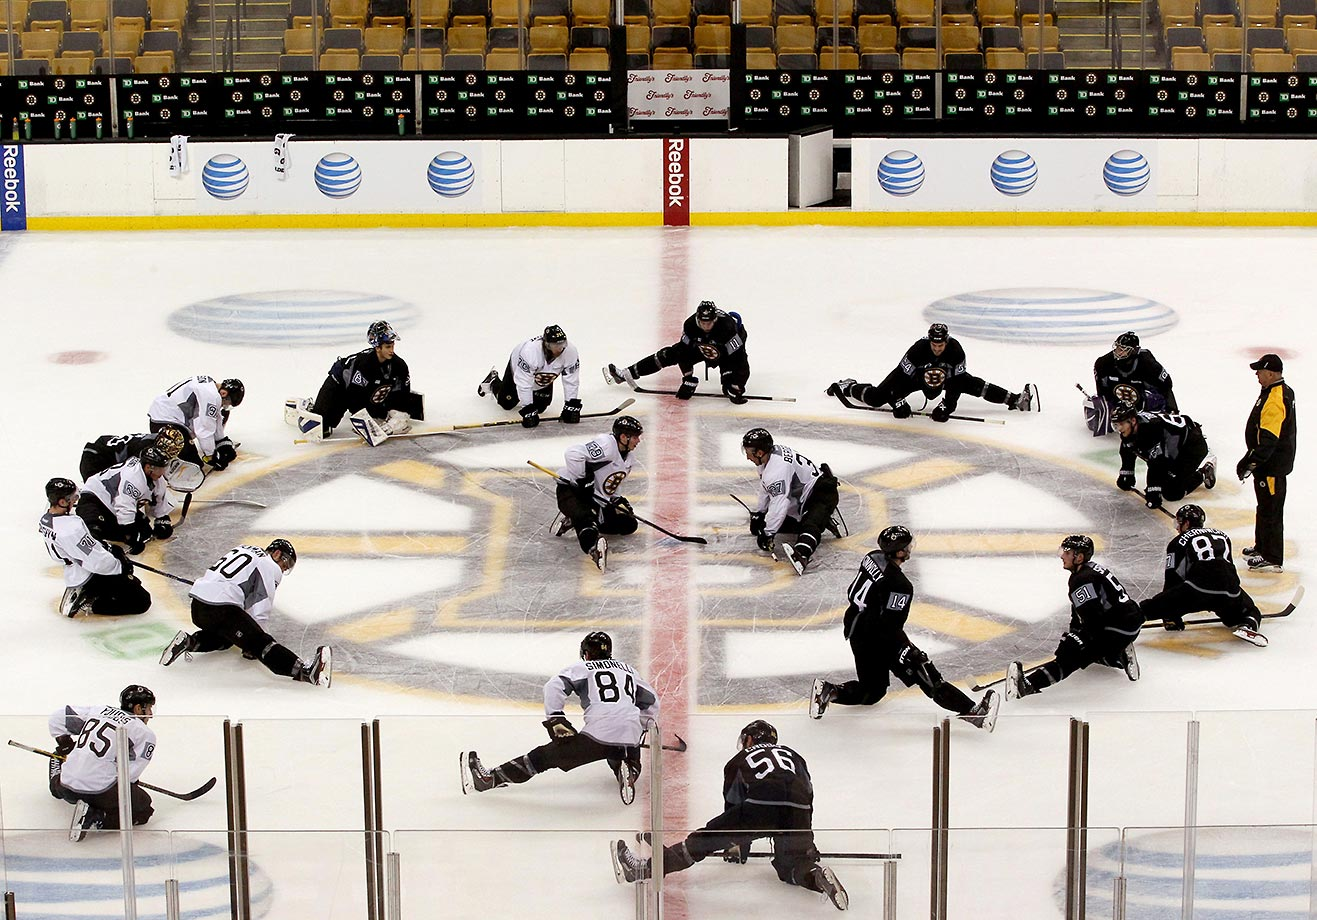 The Boston Bruins do a little stretching during their first day of full team training.